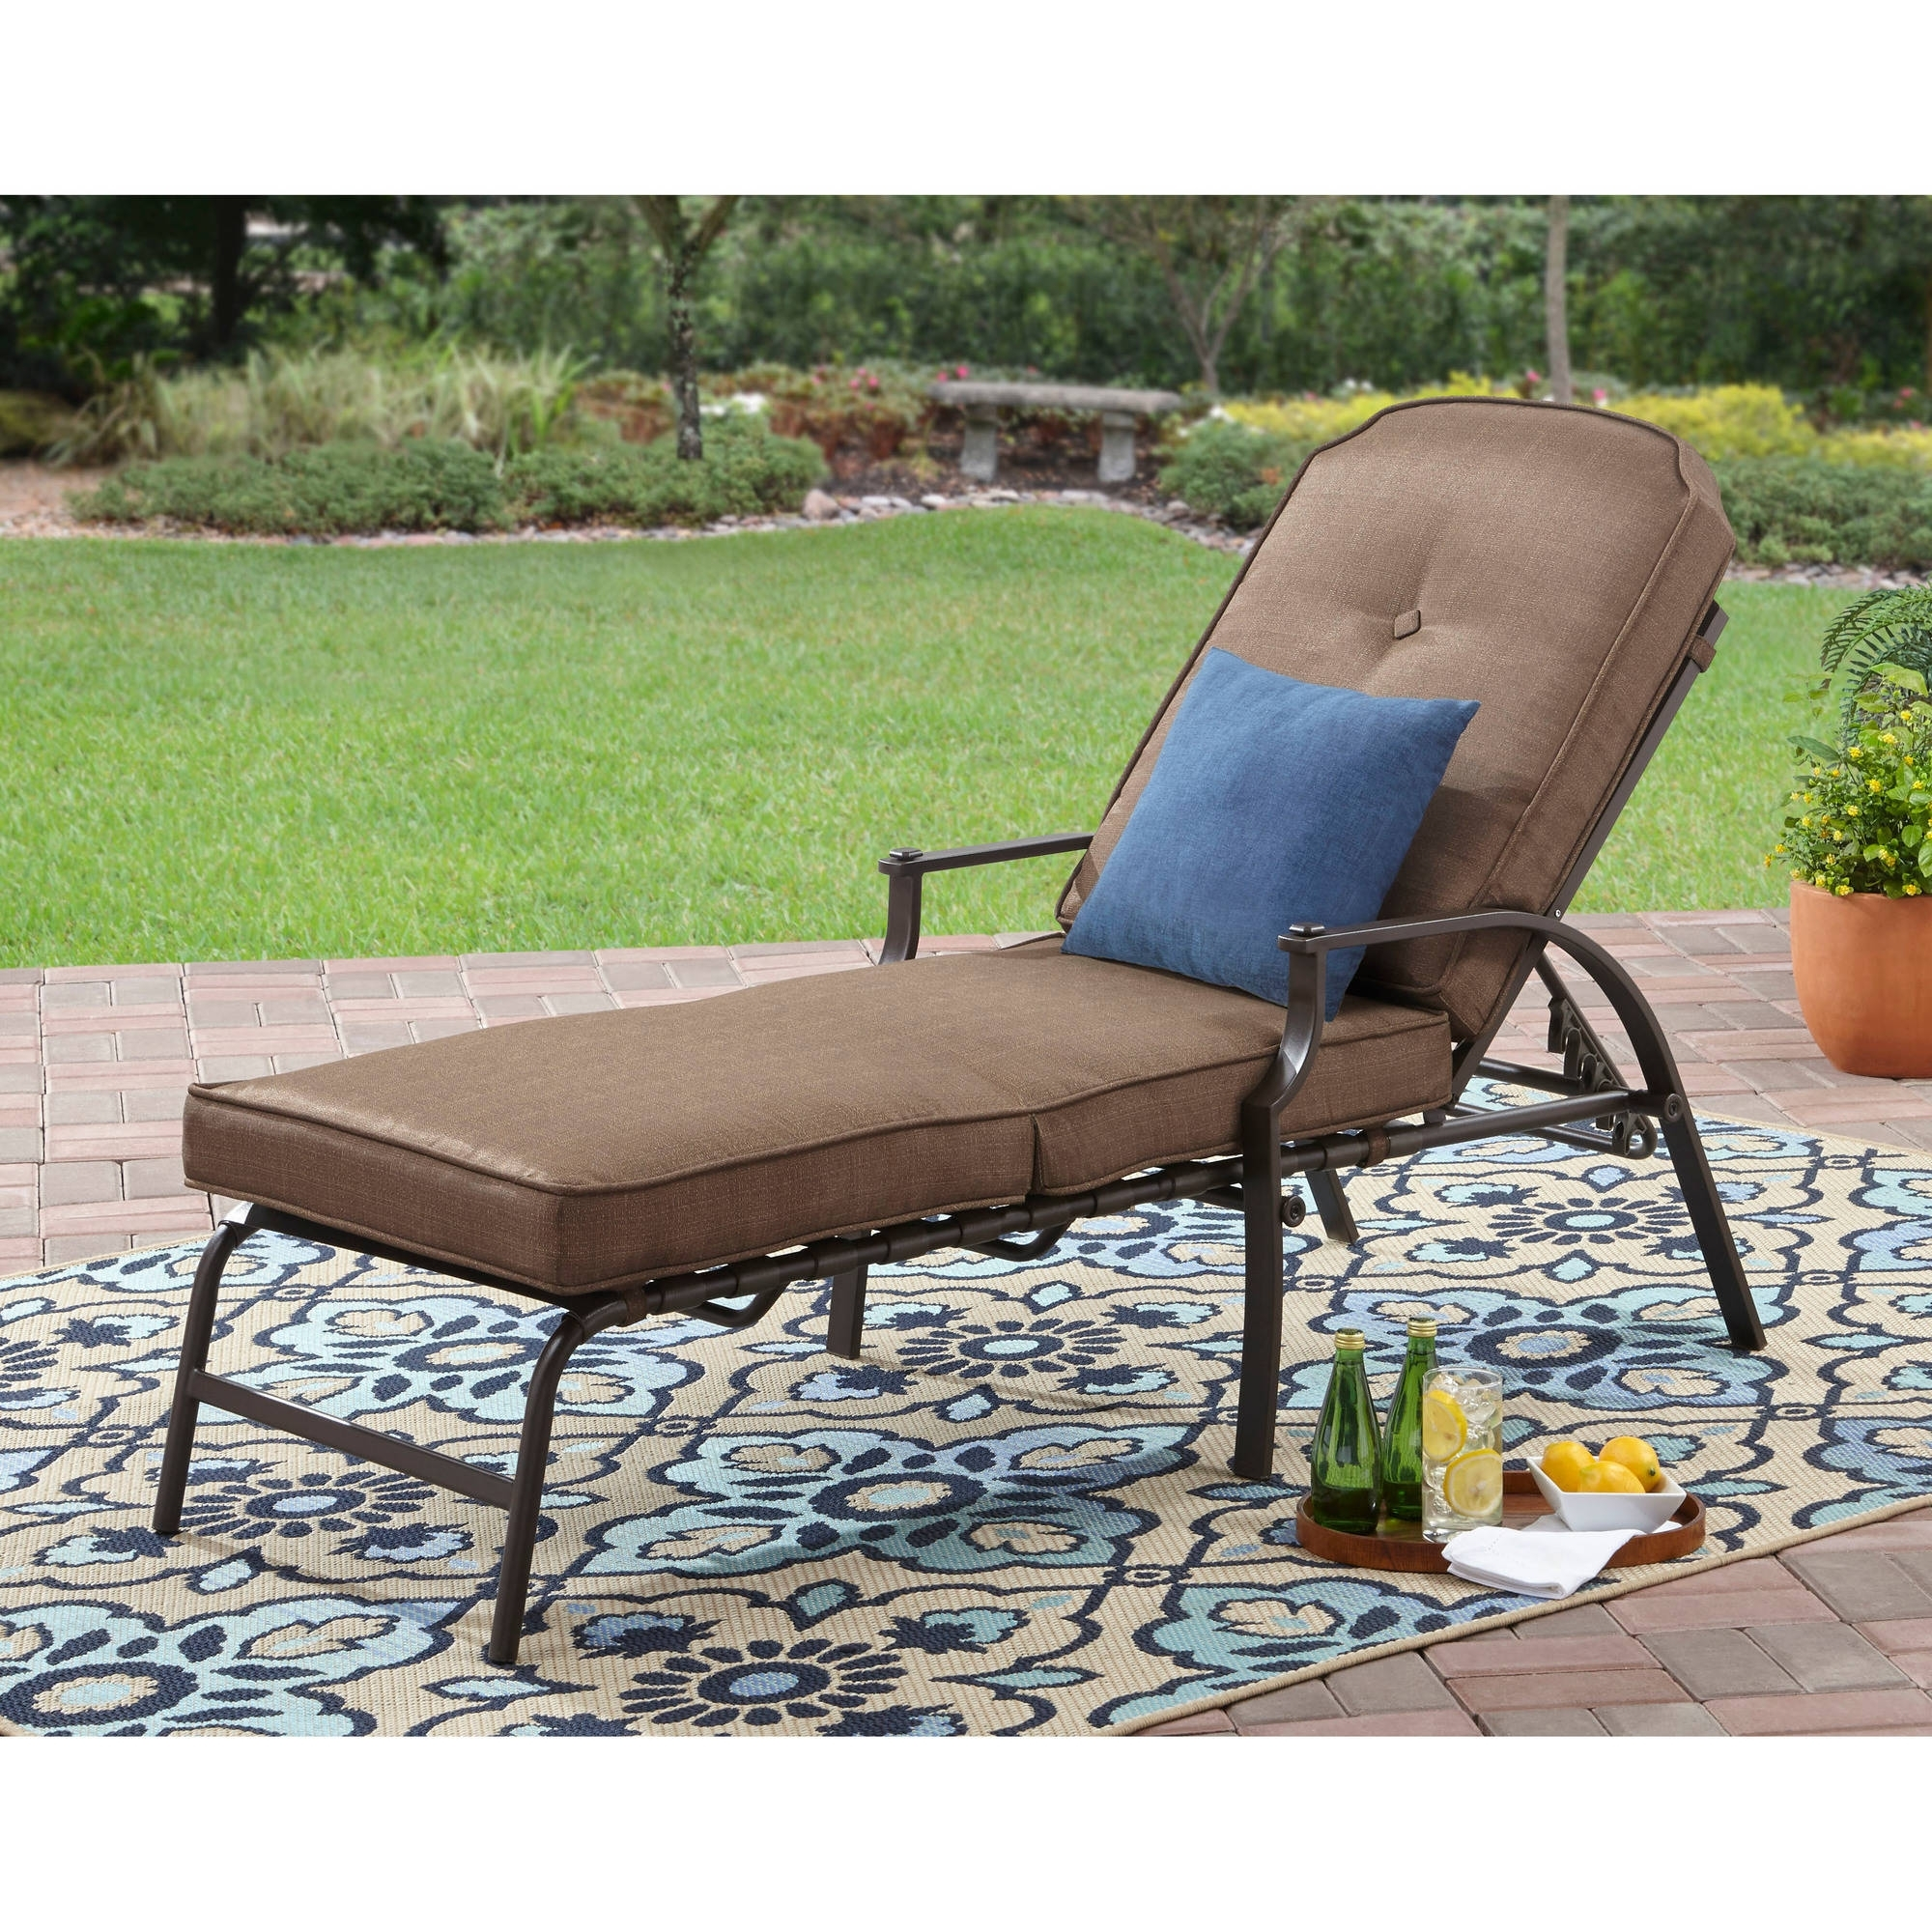 Most Recently Released Chaise Lounge Chairs At Walmart Intended For Mainstays Wentworth Chaise Lounge – Walmart (View 12 of 15)